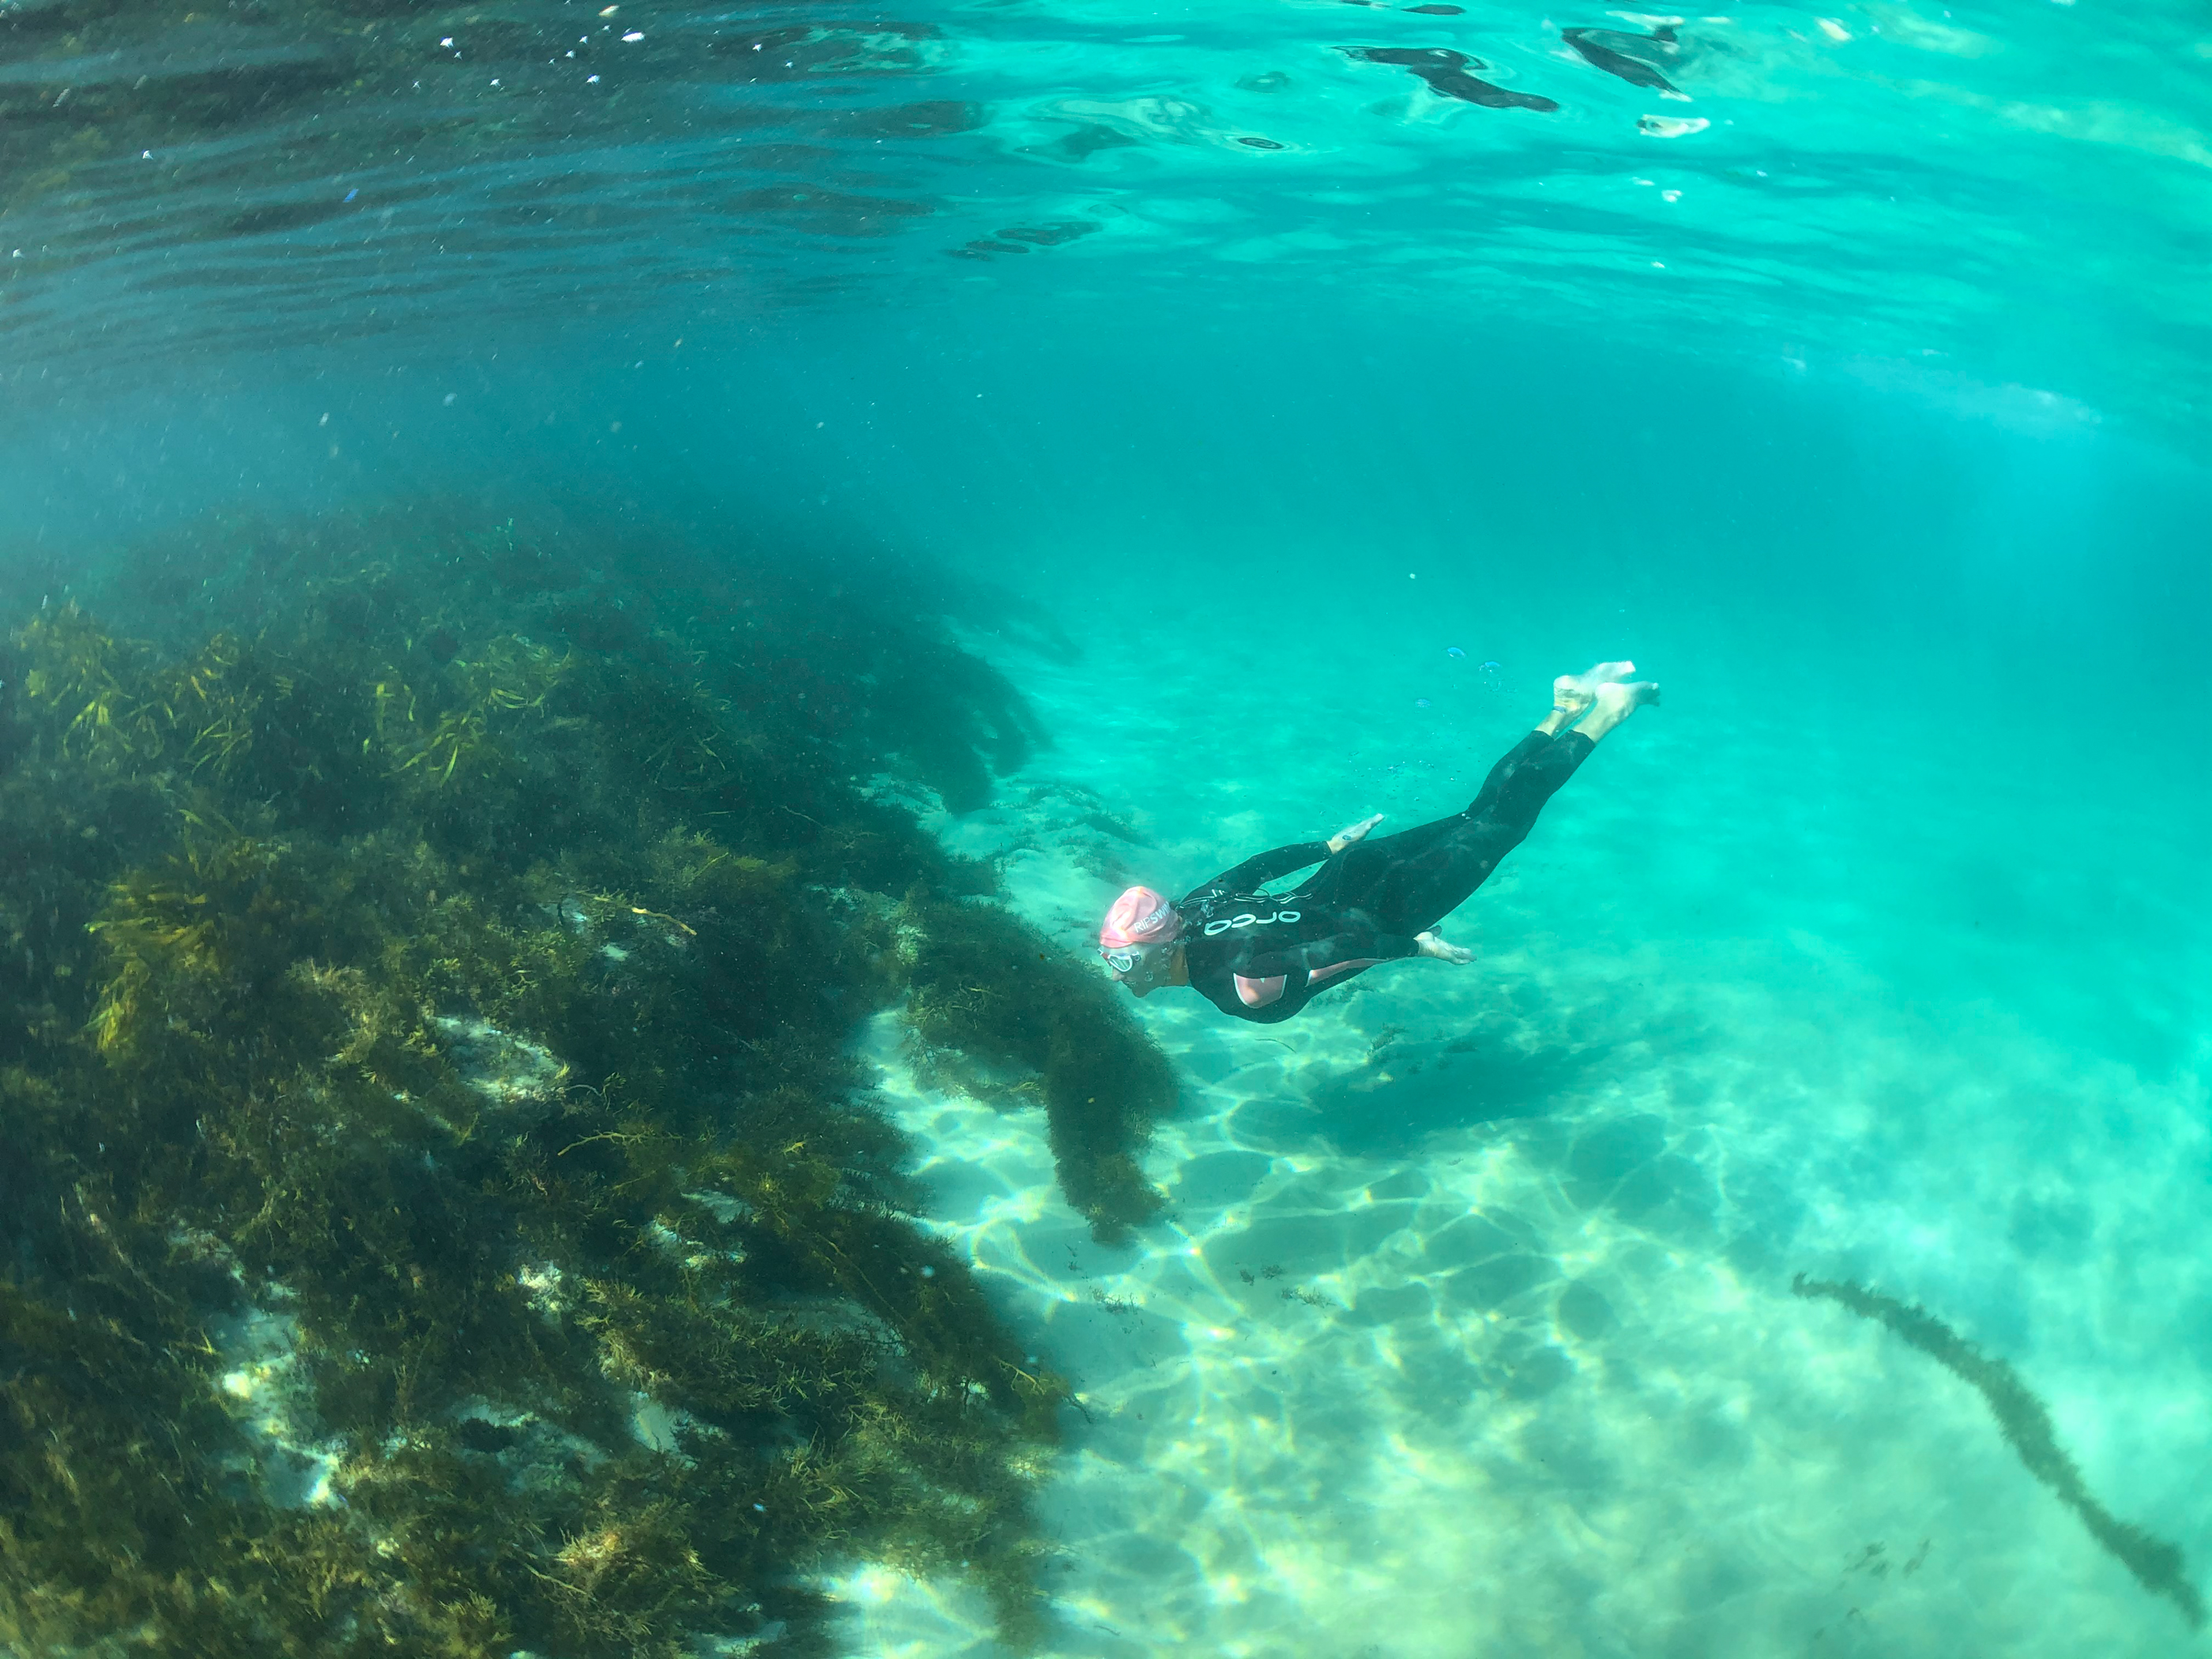 Free diving on reef in clear water Apollo Bay